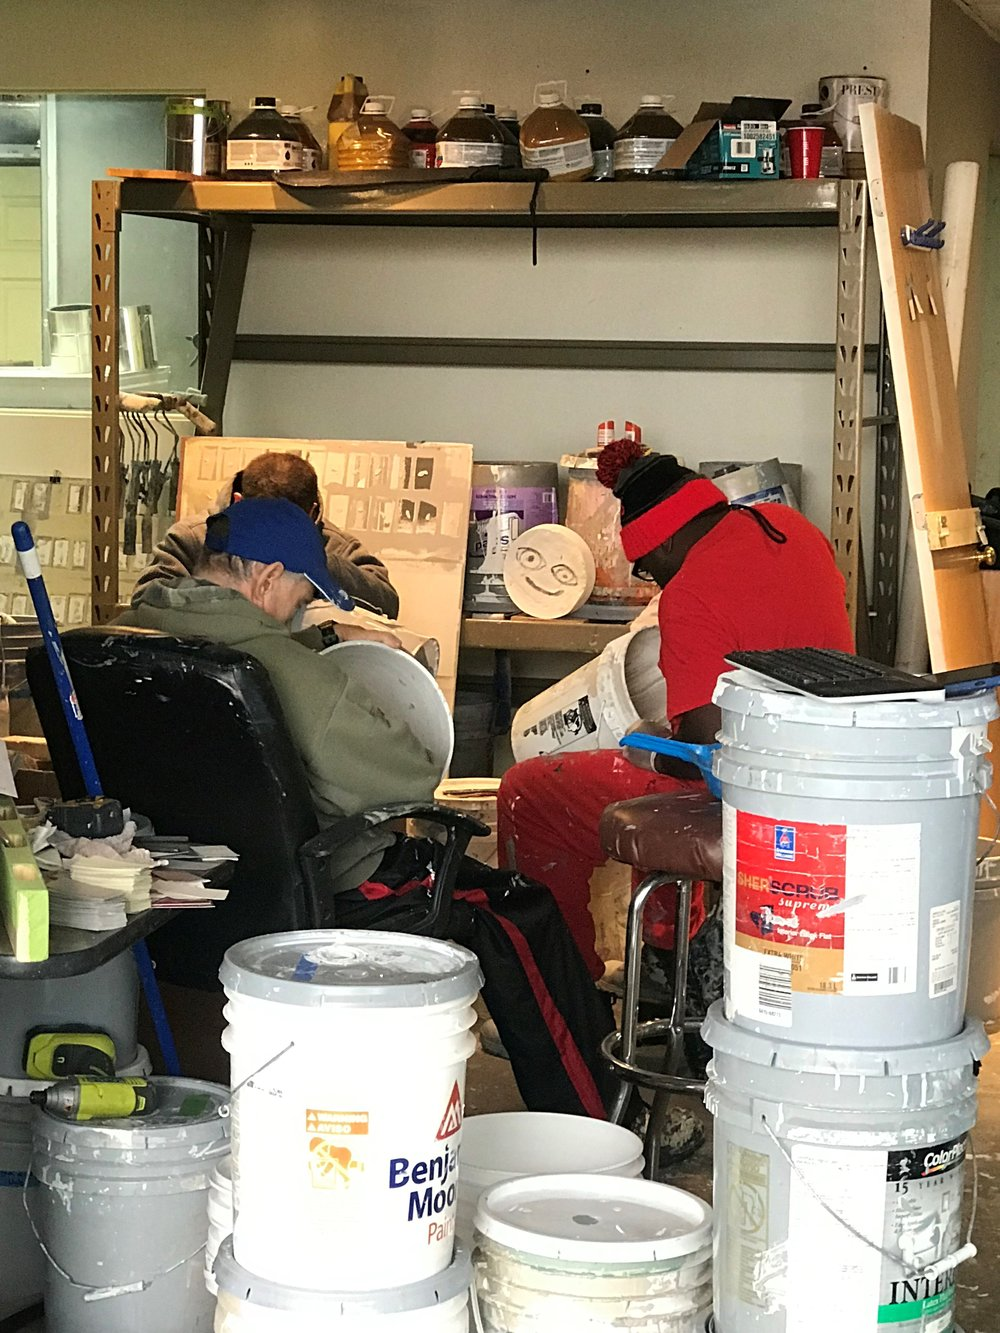 Workers from the Little City program for people with intellectual and developmental disabilities scrape dry paint from used five-gallon buckets. The non-profit is reducing waste going to landfills and helping to employ people with special needs.